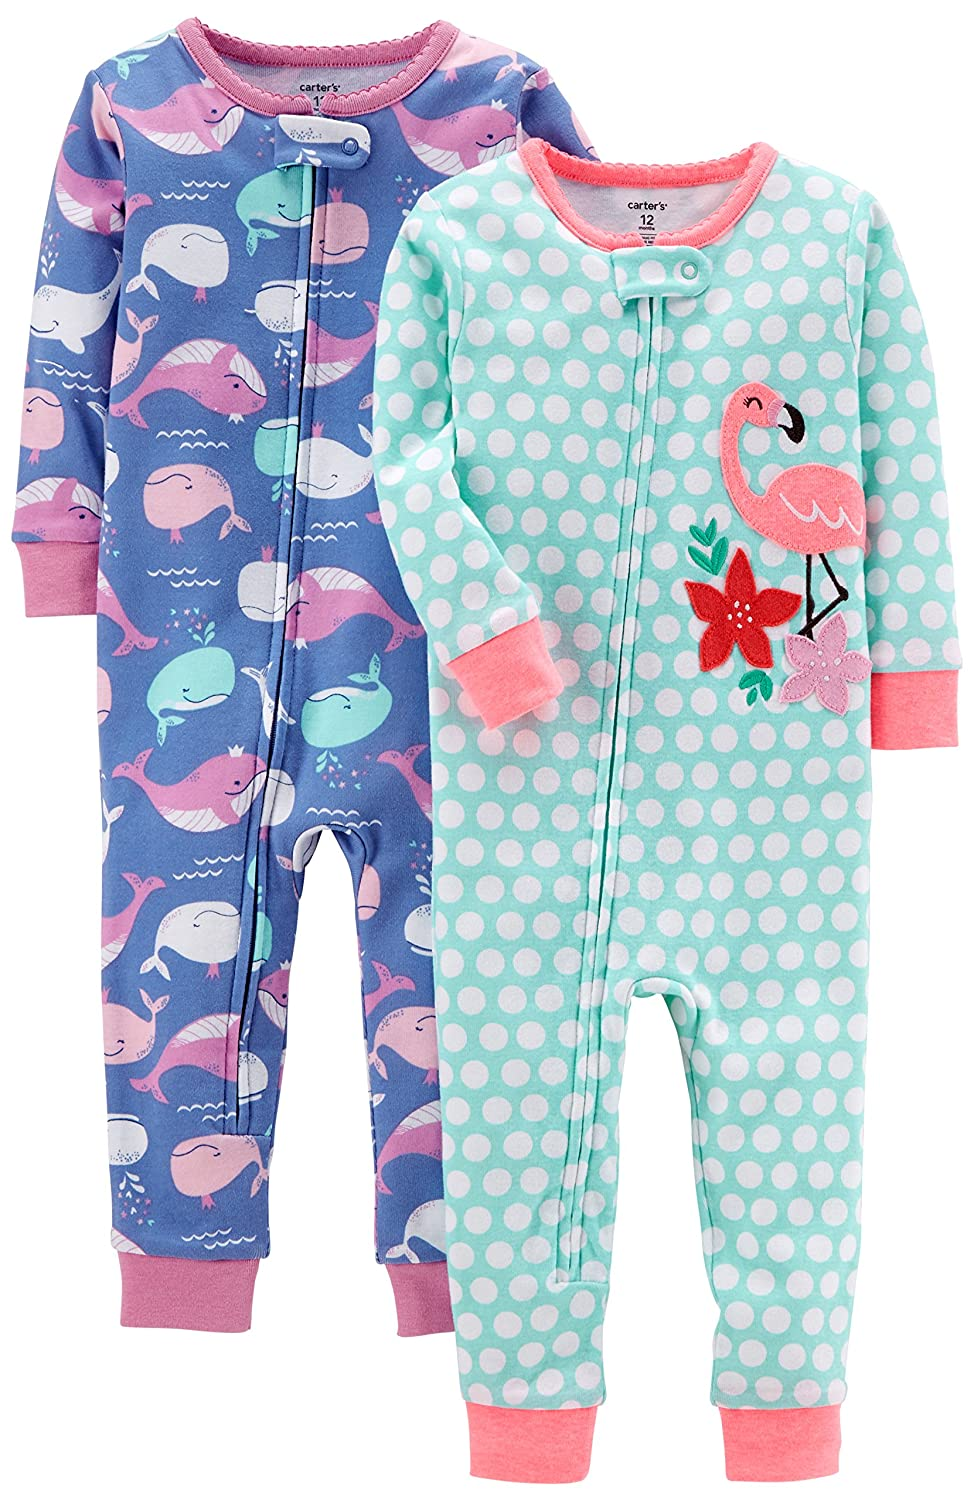 Carter's Baby Girls' 2-Pack Cotton Footless Pajamas Carter's